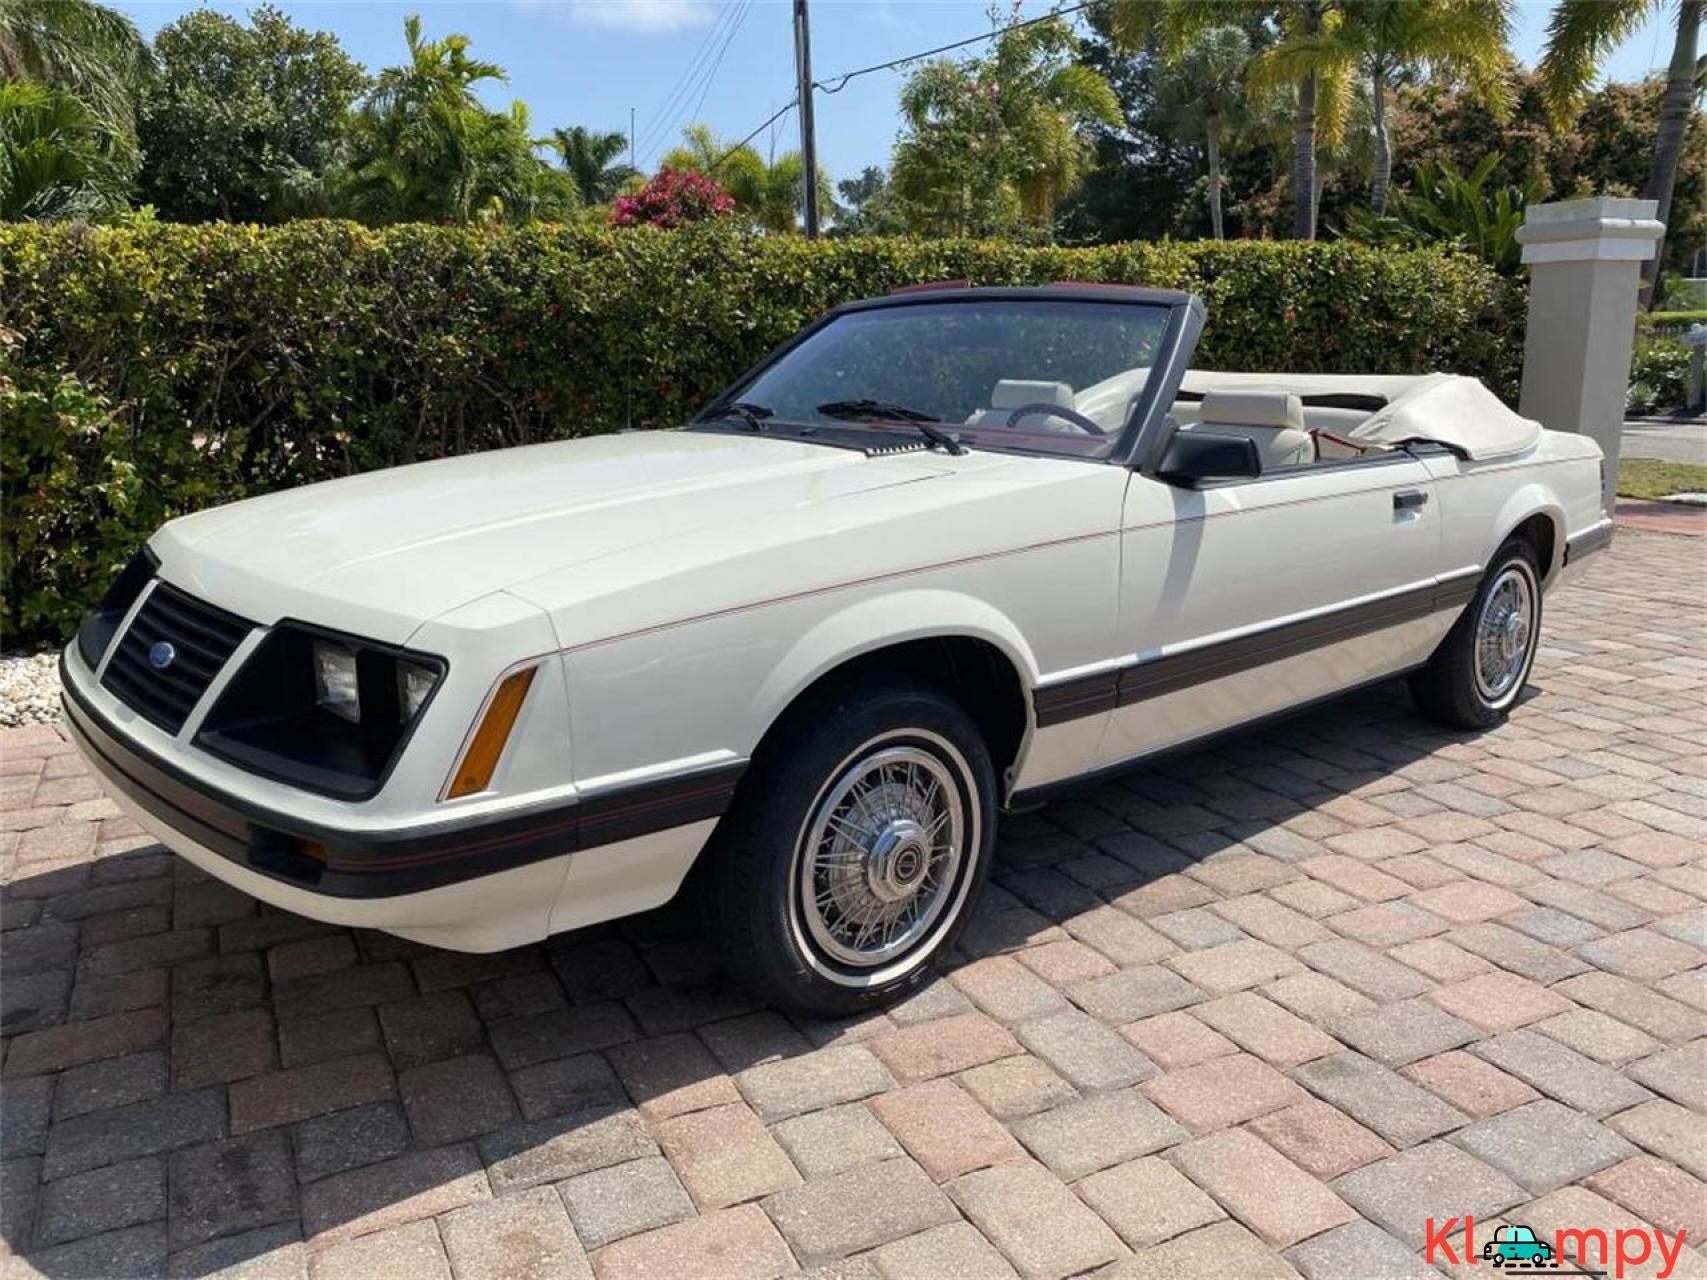 1983 Ford Mustang 3.8 LITRE V6 AUTO - 11/20